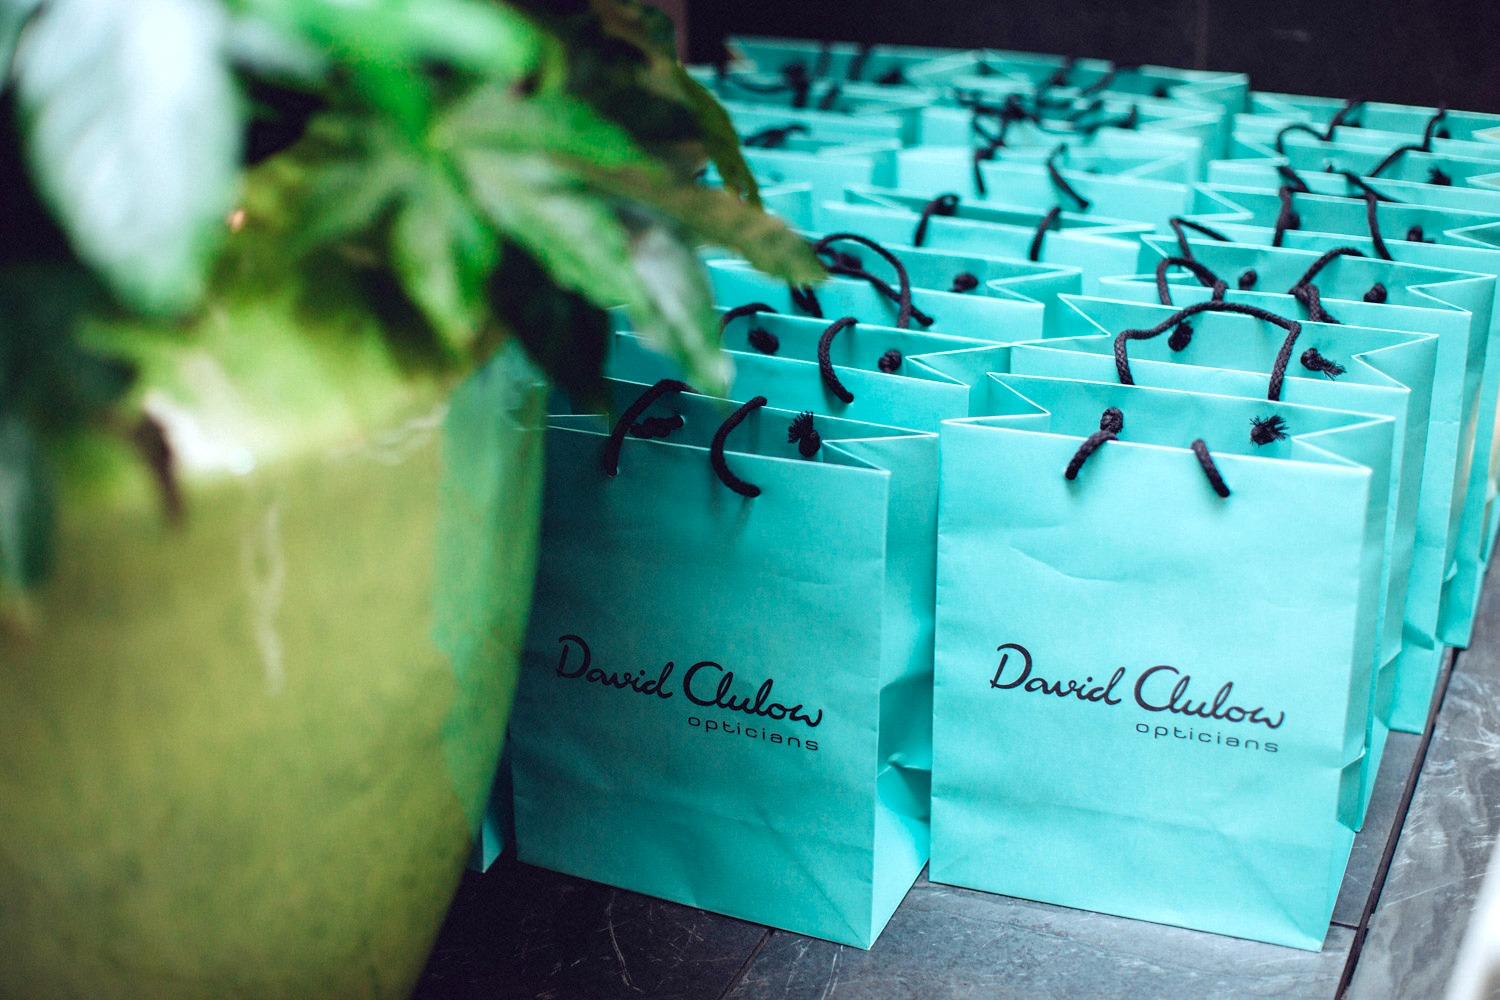 goodie bags at david clulow event